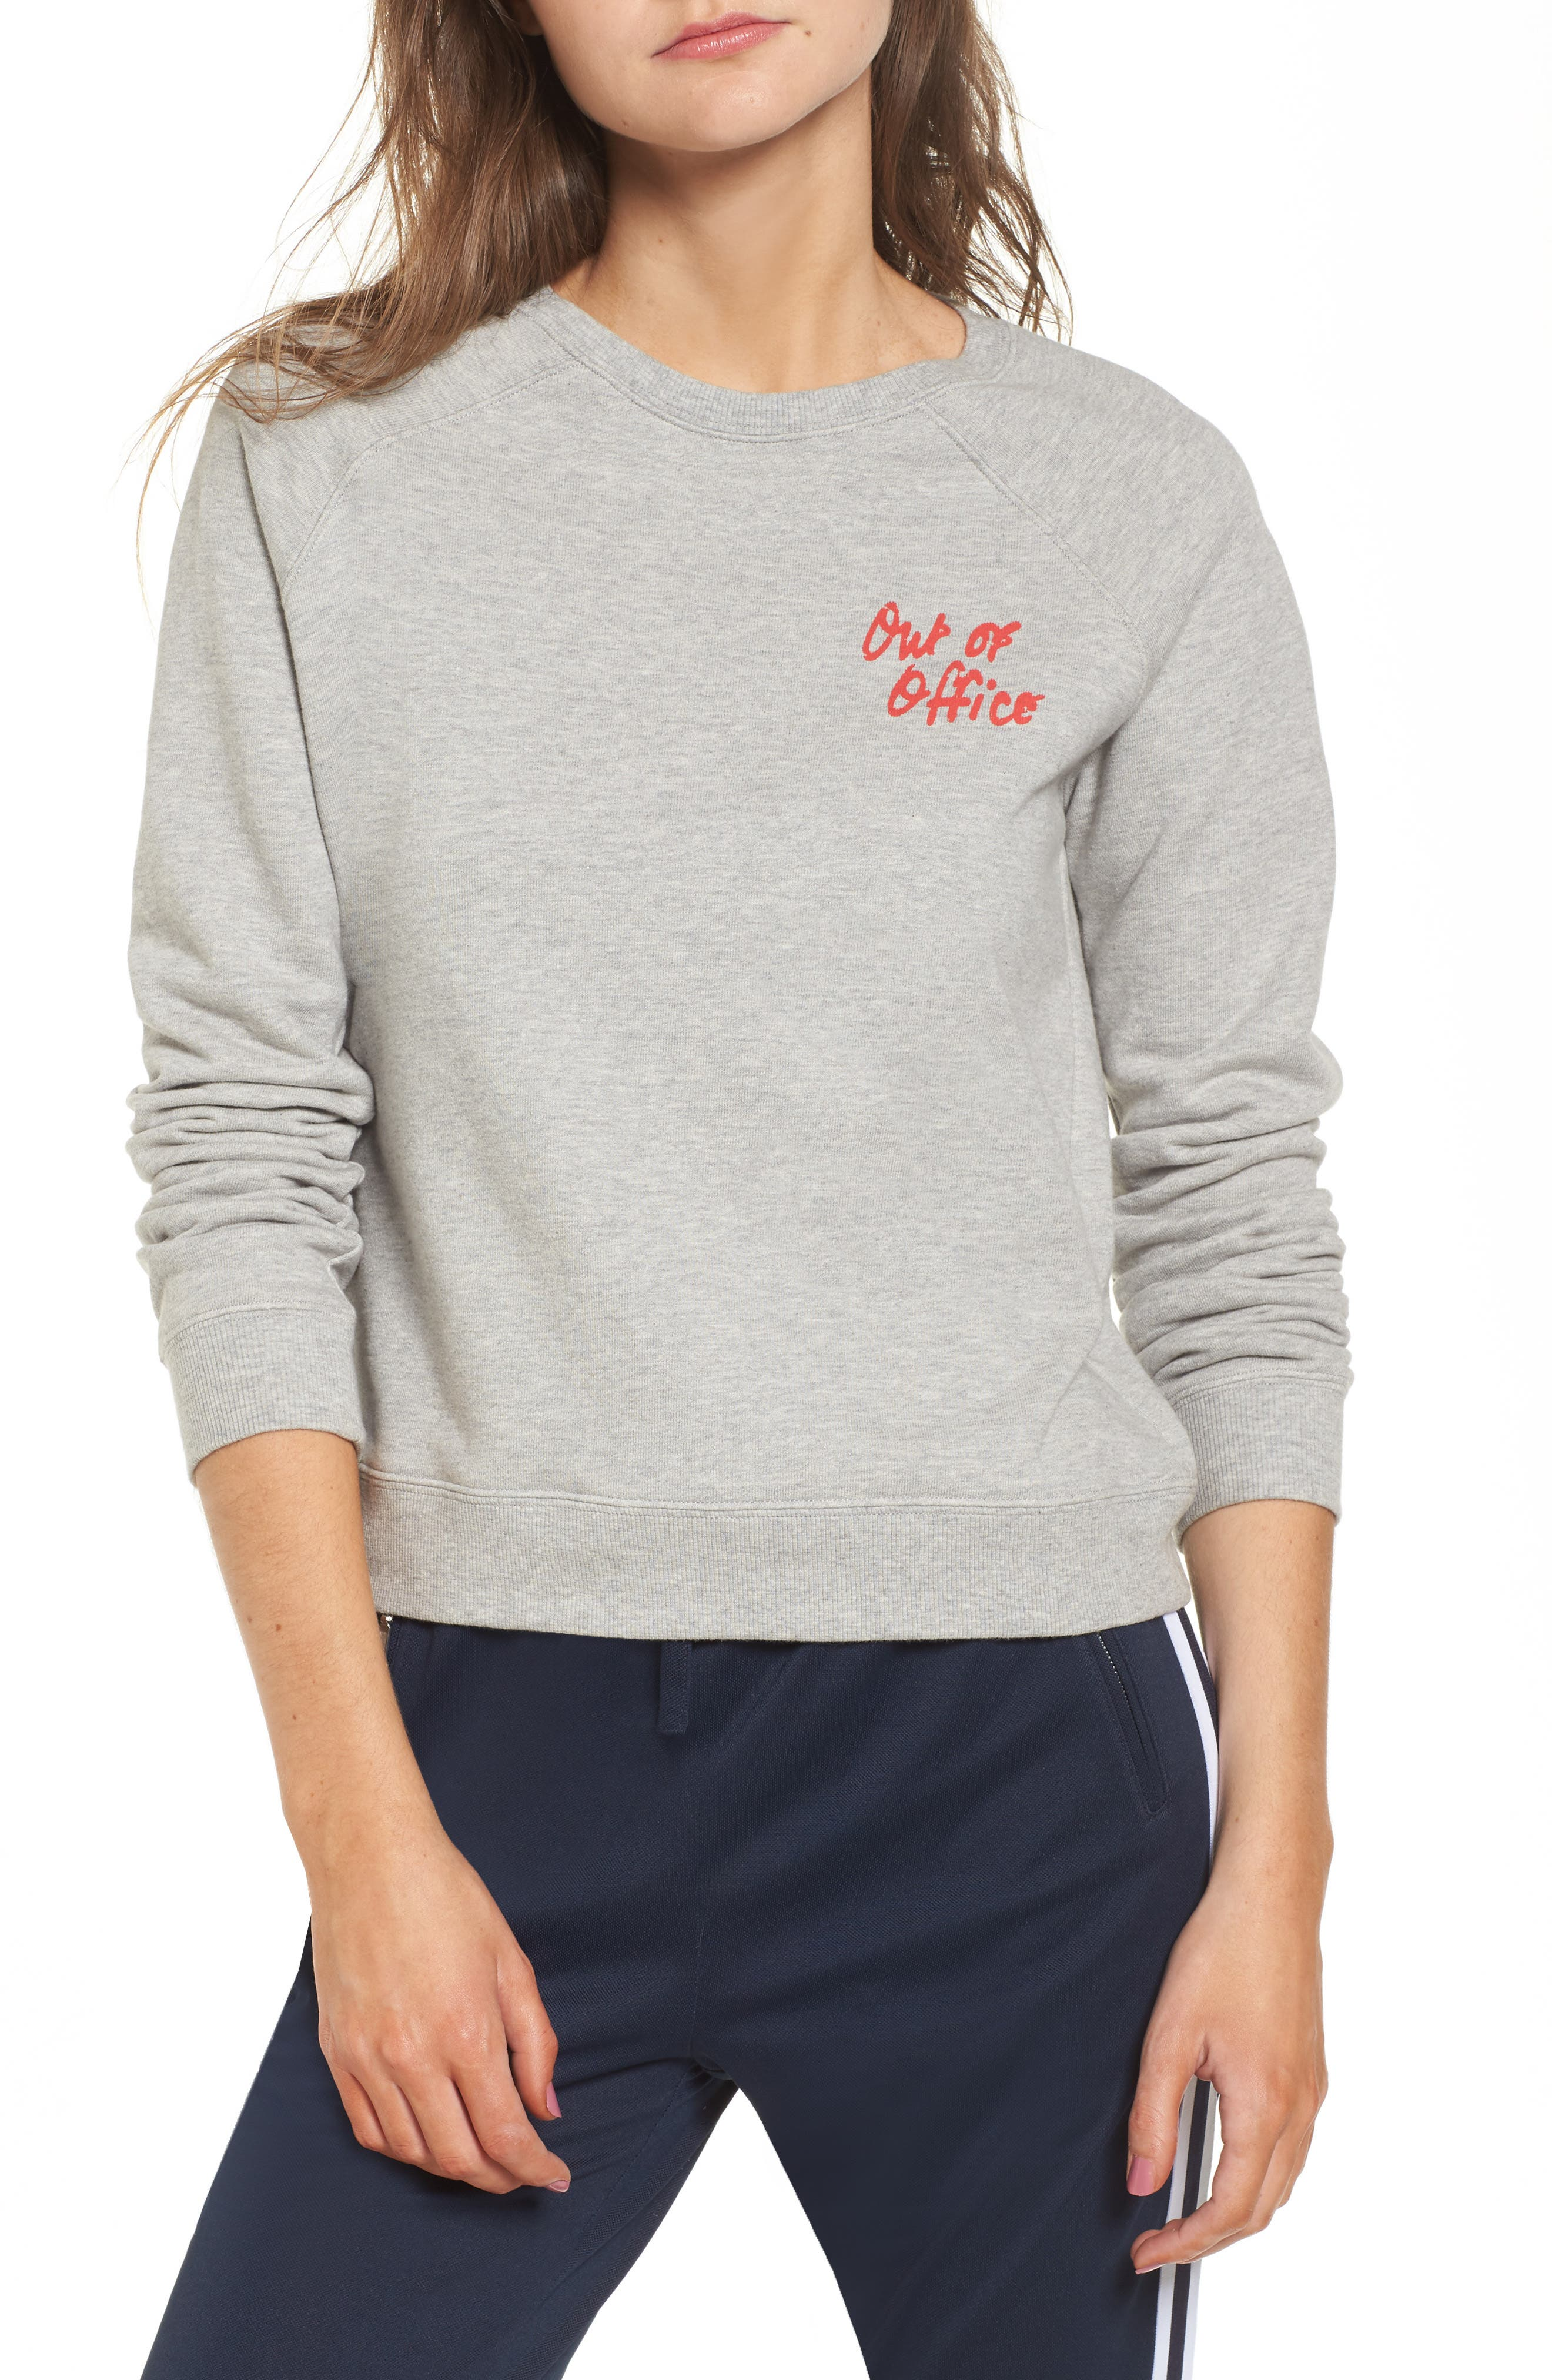 Out of Office Sweatshirt,                             Main thumbnail 1, color,                             039